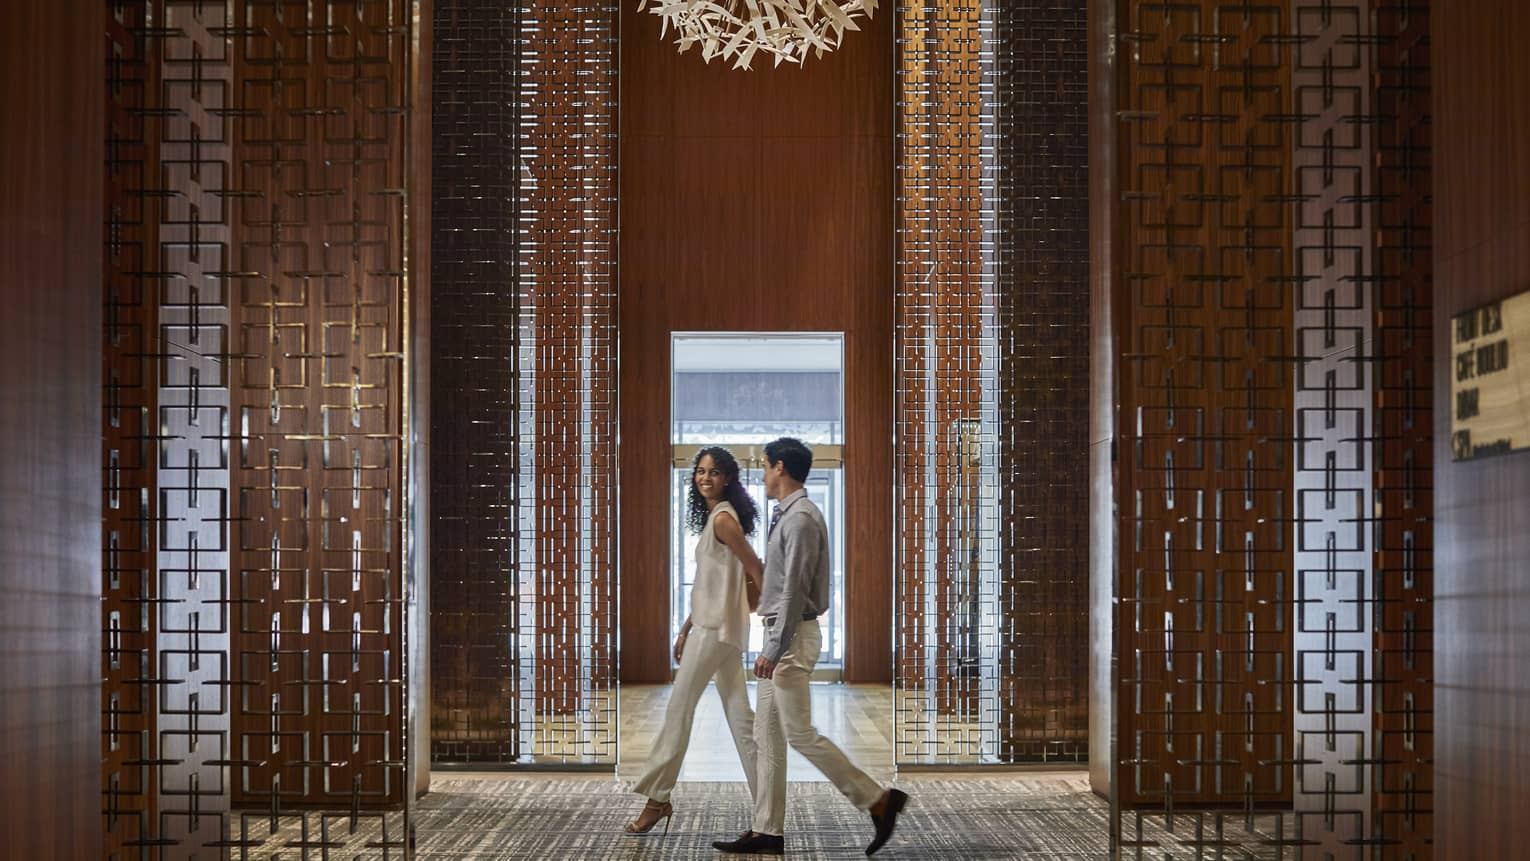 Couple walk through lobby with decorative wood panel walls, modern chandelier